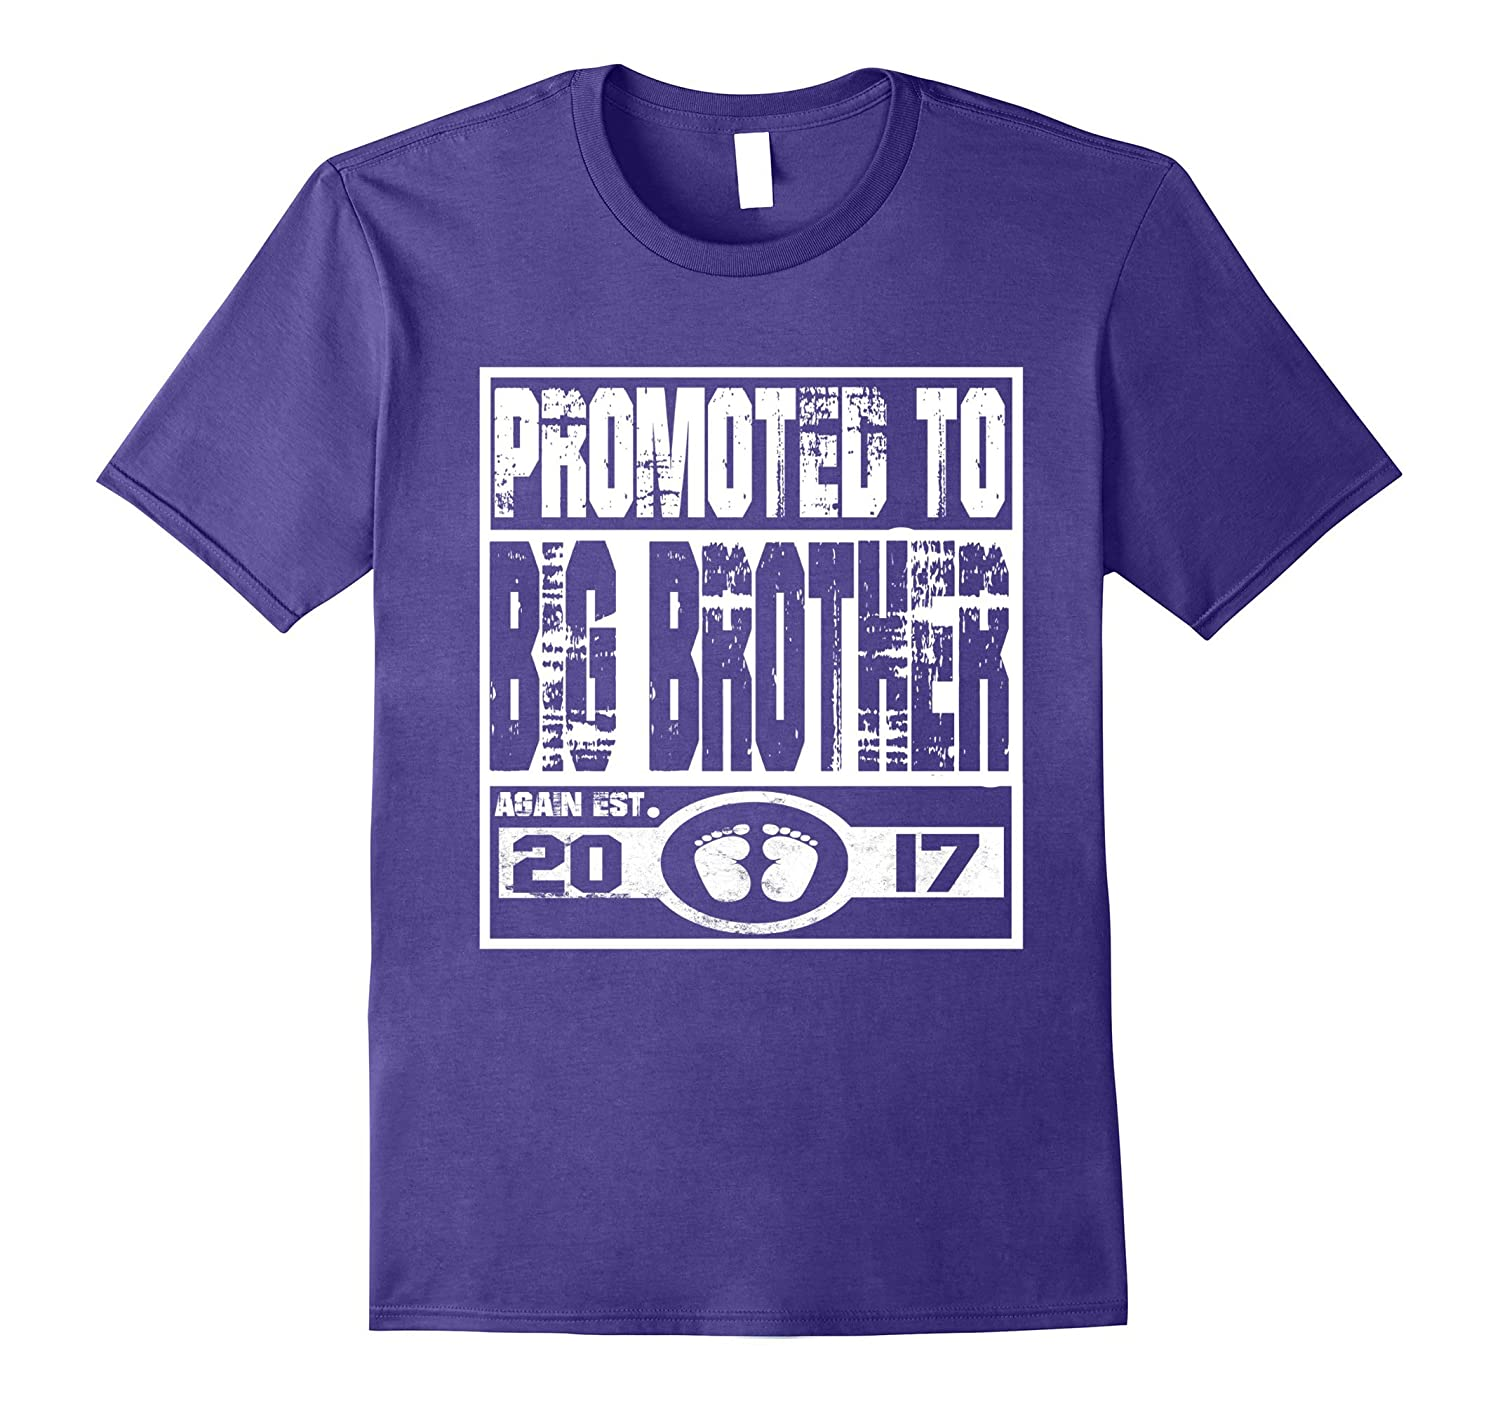 Big Brother Again est 2017 T-shirt-CD